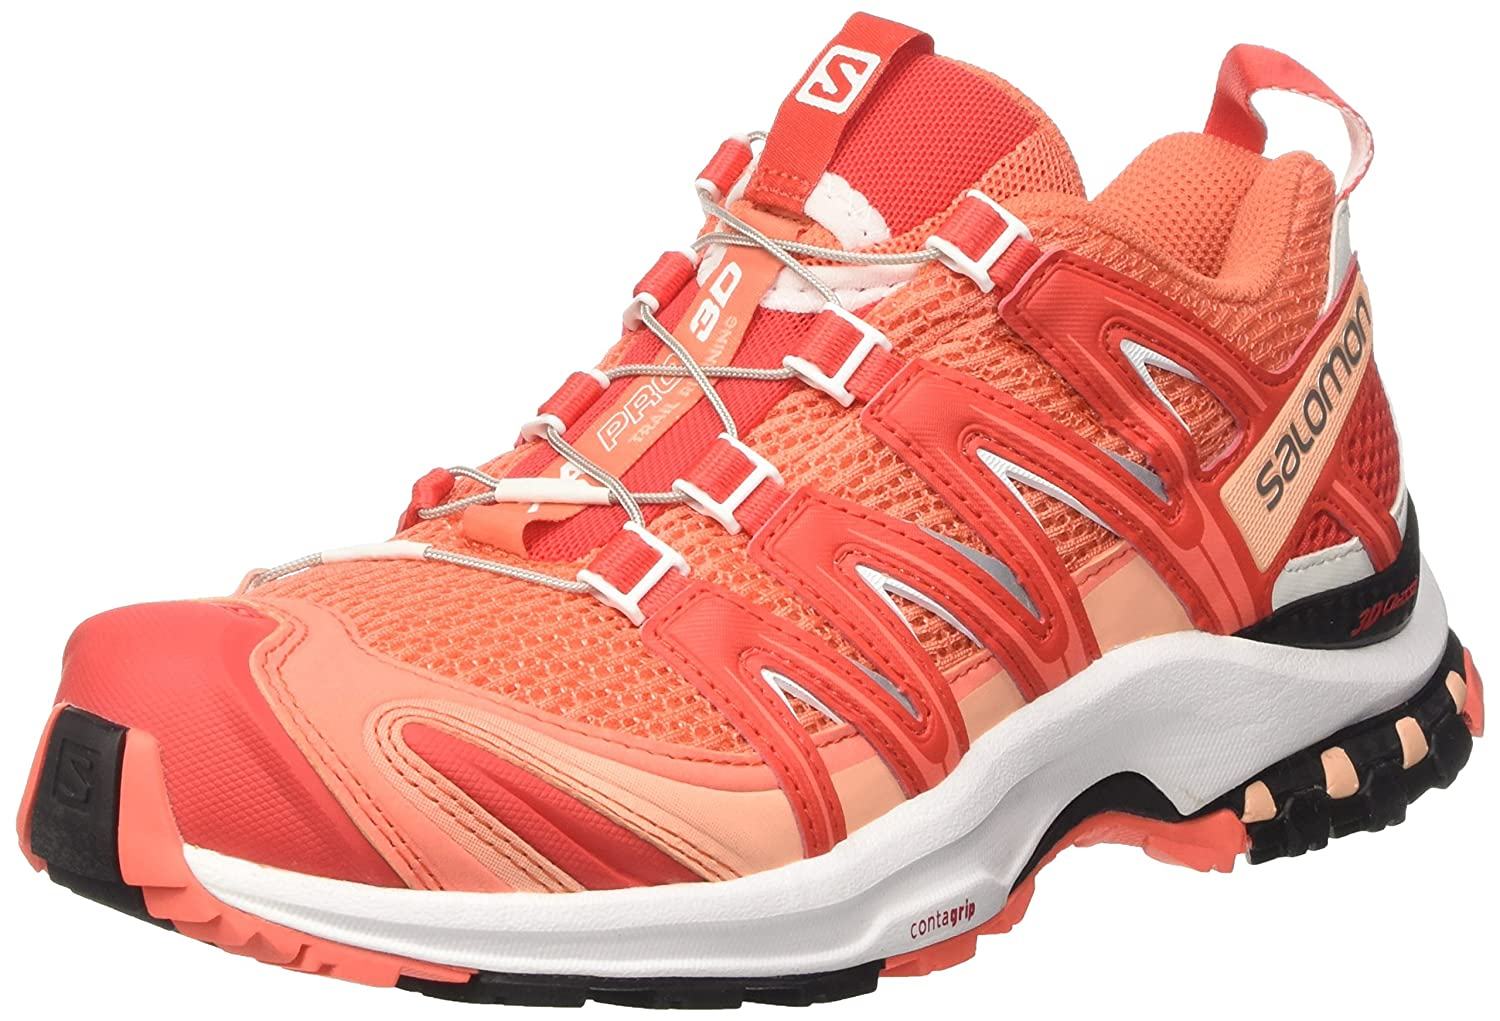 Salomon Damen Xa Pro 3D Trailrunning-Schuhe  | Outlet Online